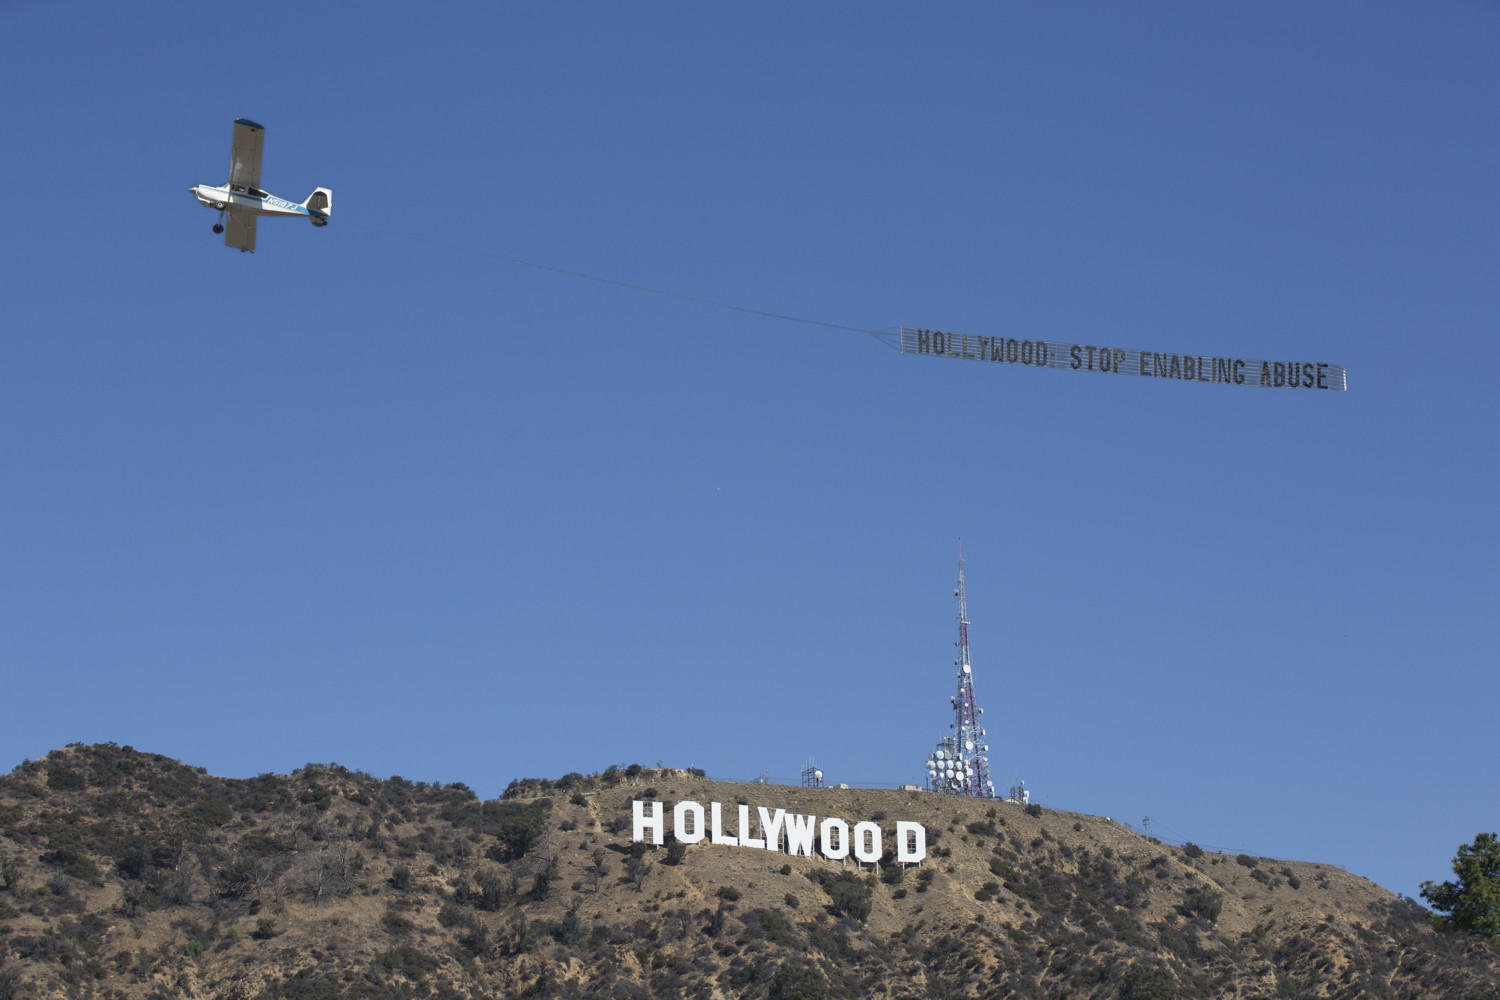 Banner seen over Los Angeles demands Hollywood 'stop enabling abuse'